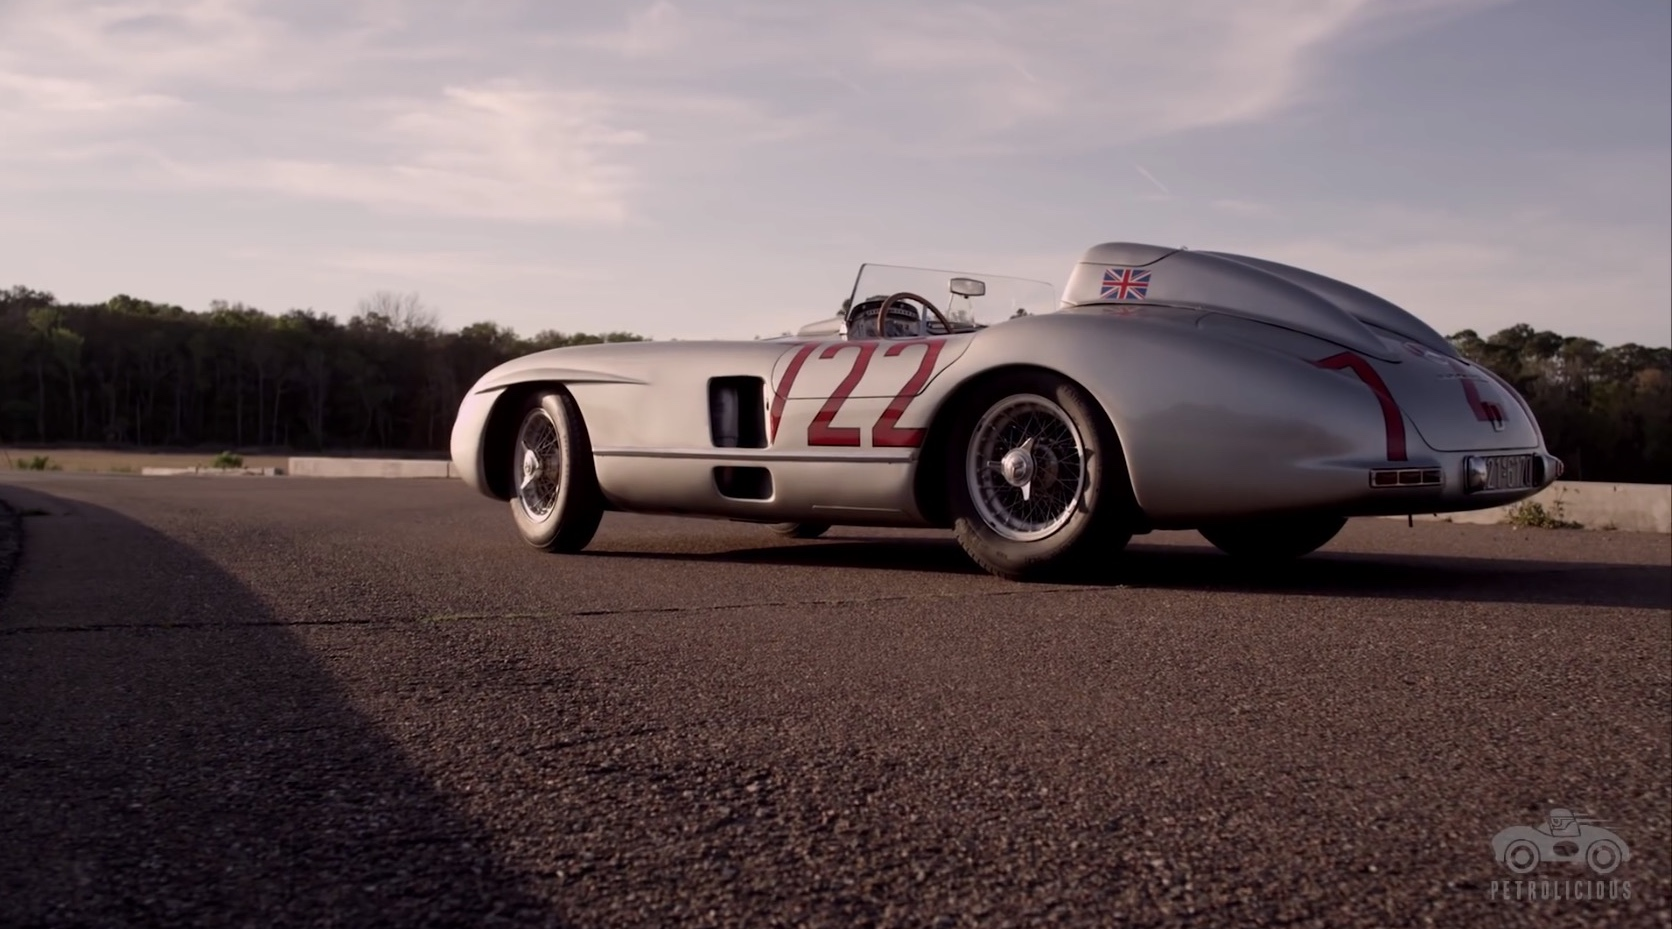 Stirling moss tells the story of winning mille miglia in for Mercedes benz 300 slr